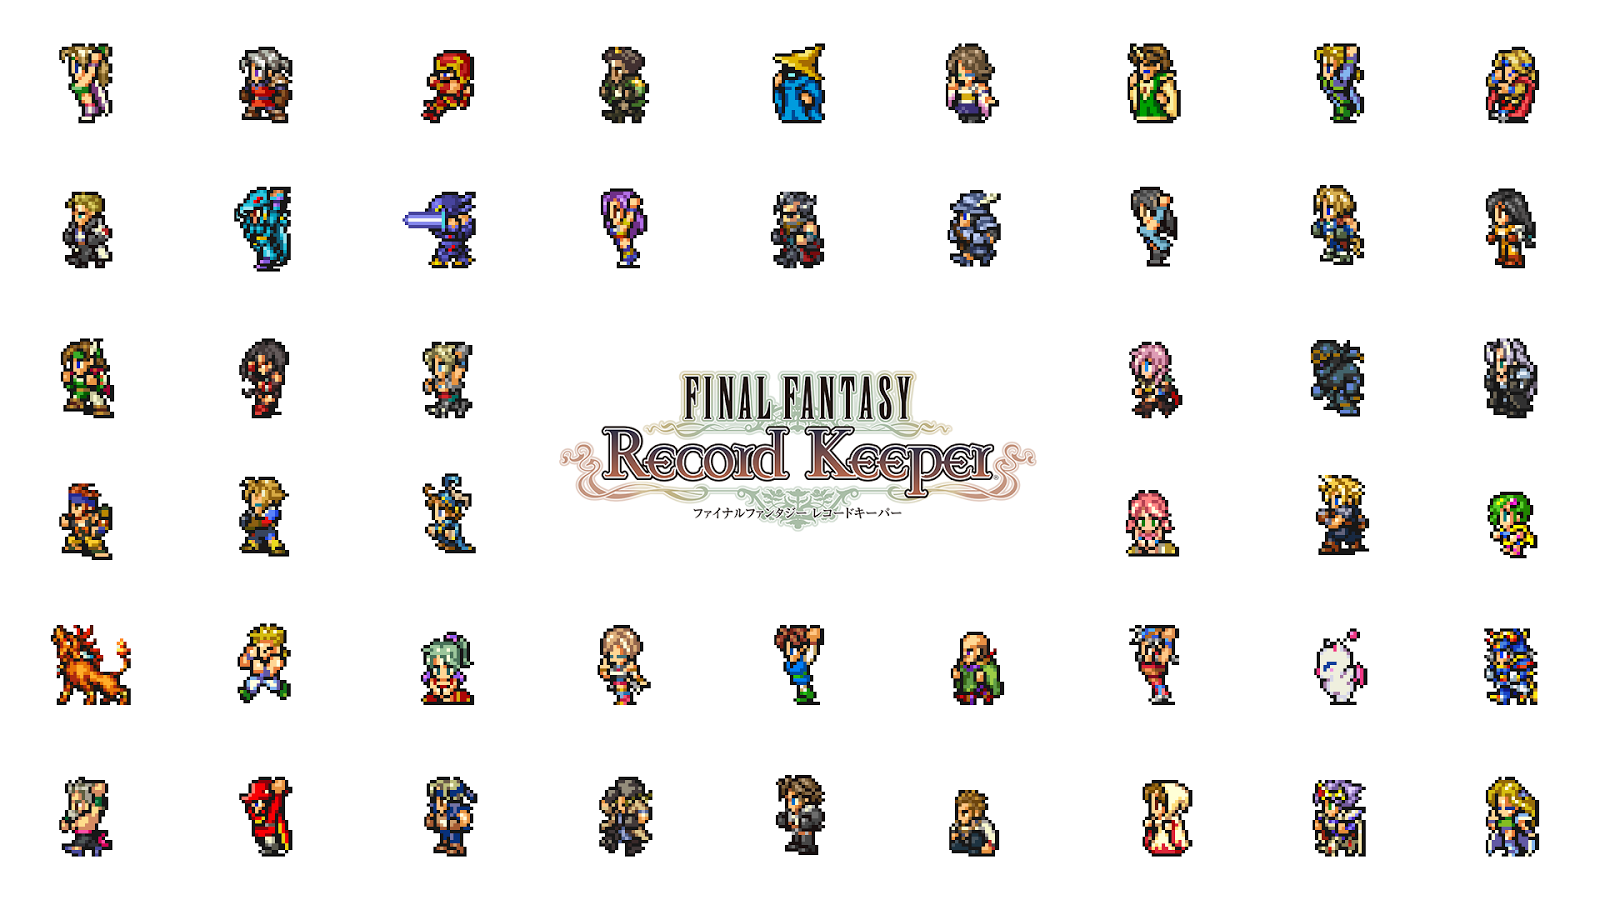 FINAL FANTASY Record Keeper Screenshot 12